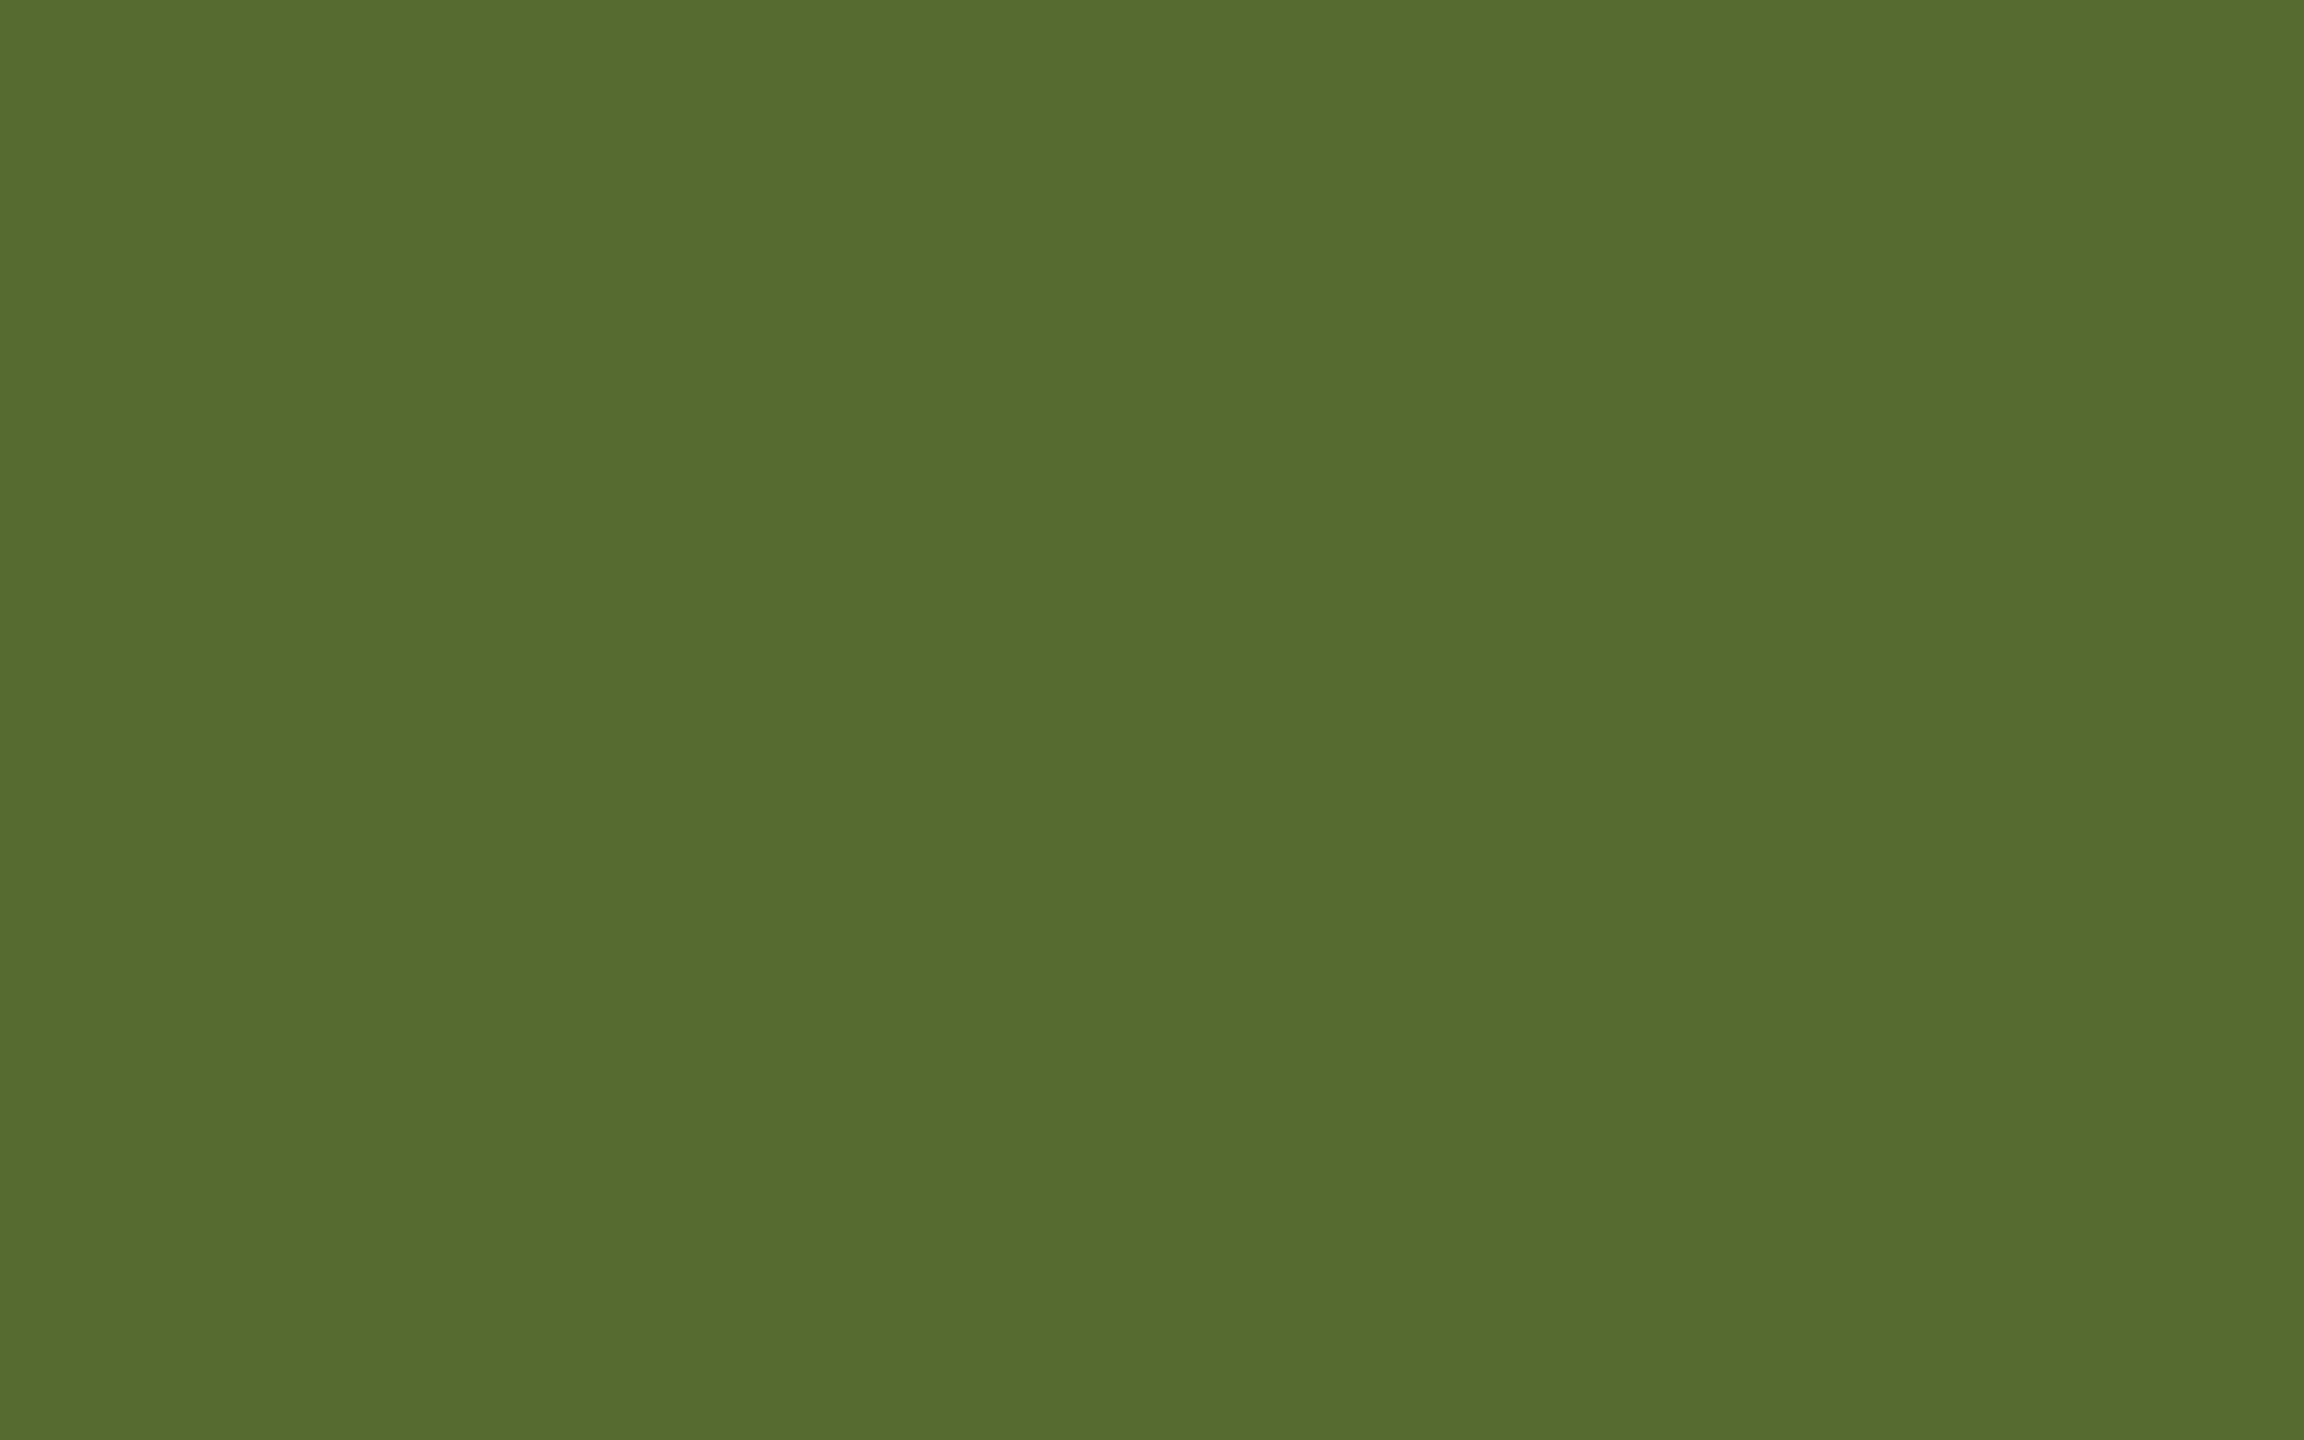 2304x1440 Dark Olive Green Solid Color Background